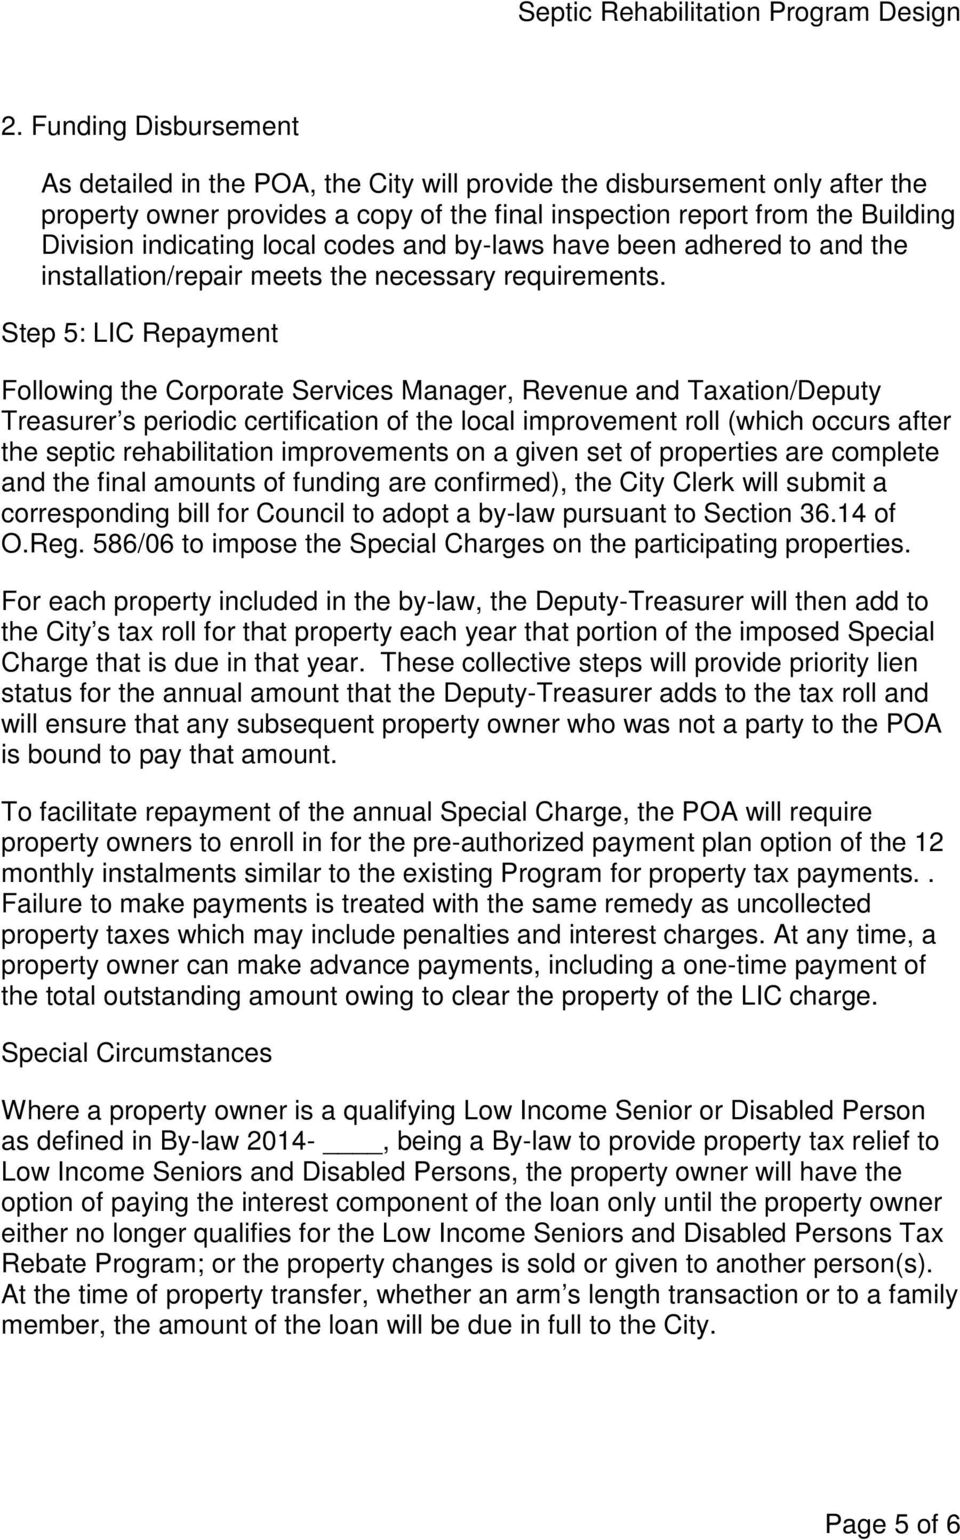 Step 5: LIC Repayment Following the Corporate Services Manager, Revenue and Taxation/Deputy Treasurer s periodic certification of the local improvement roll (which occurs after the septic